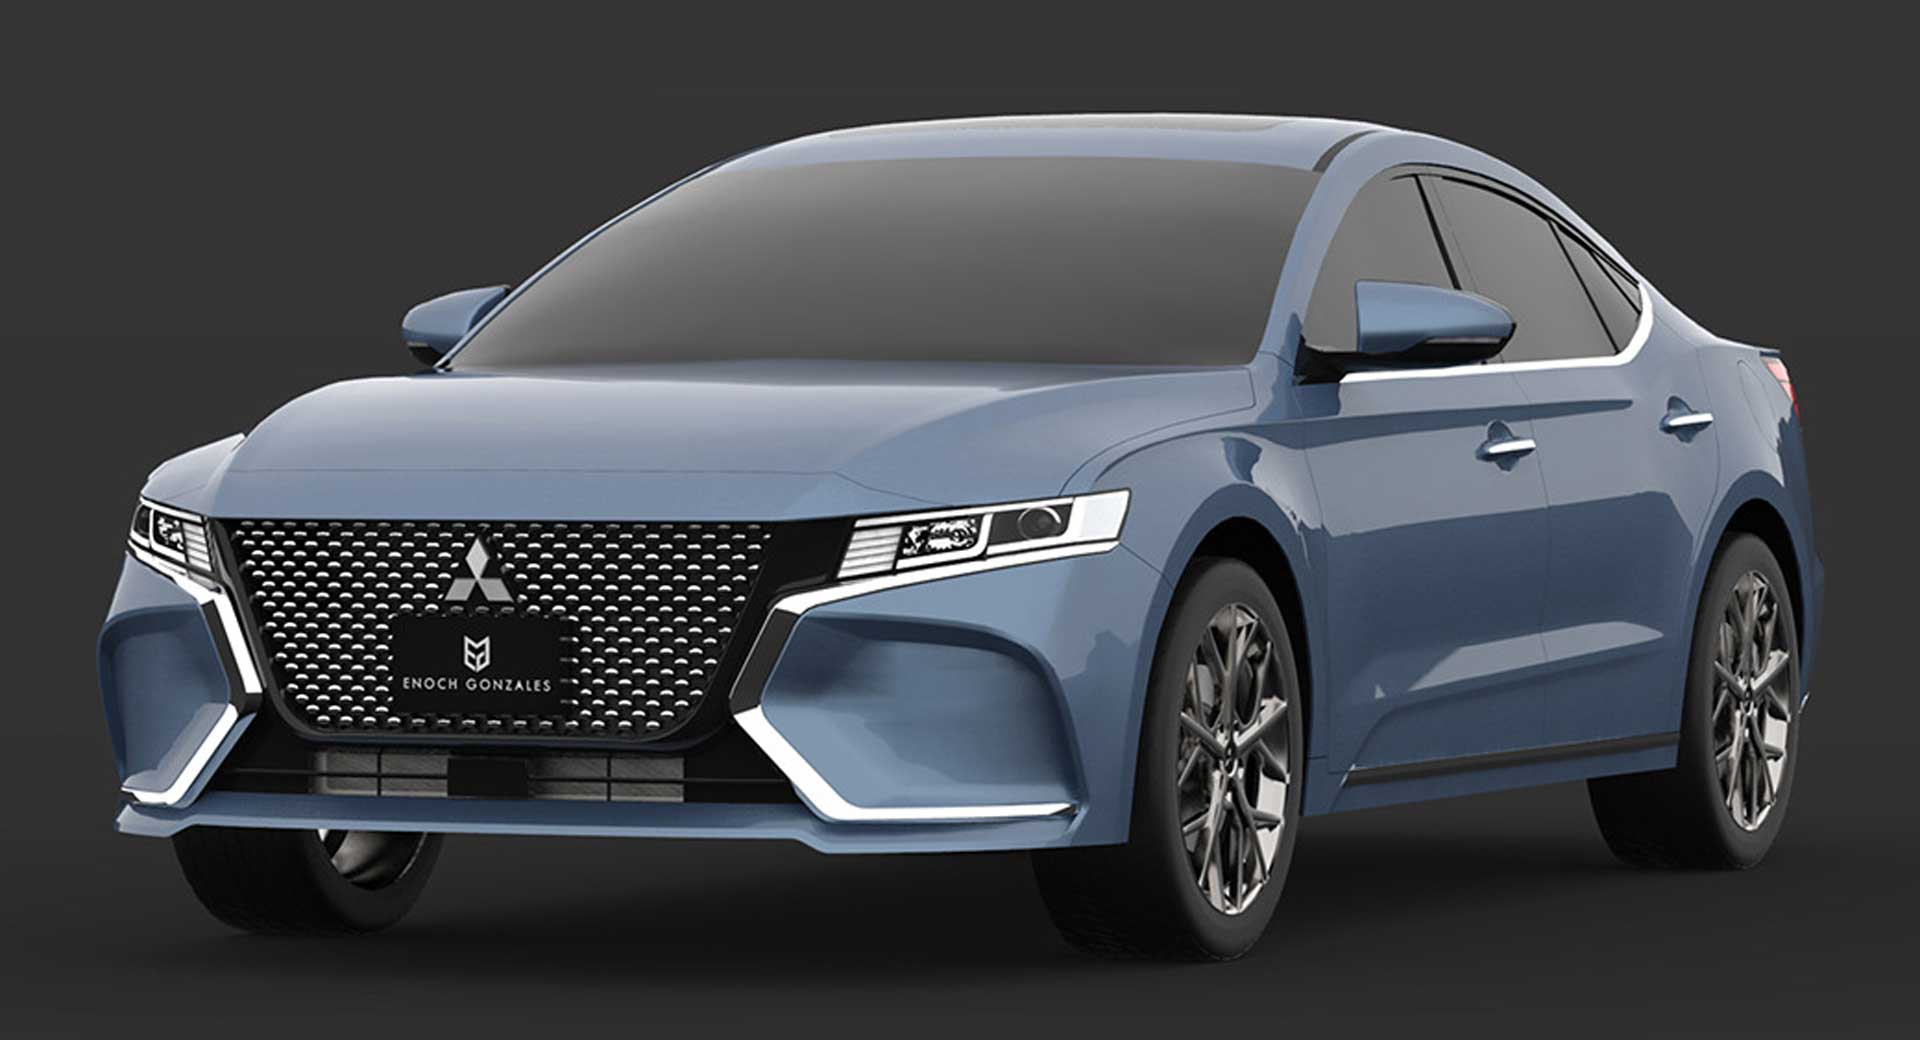 2020 Mitsubishi Gallant Study Envisions The Unlikely ...